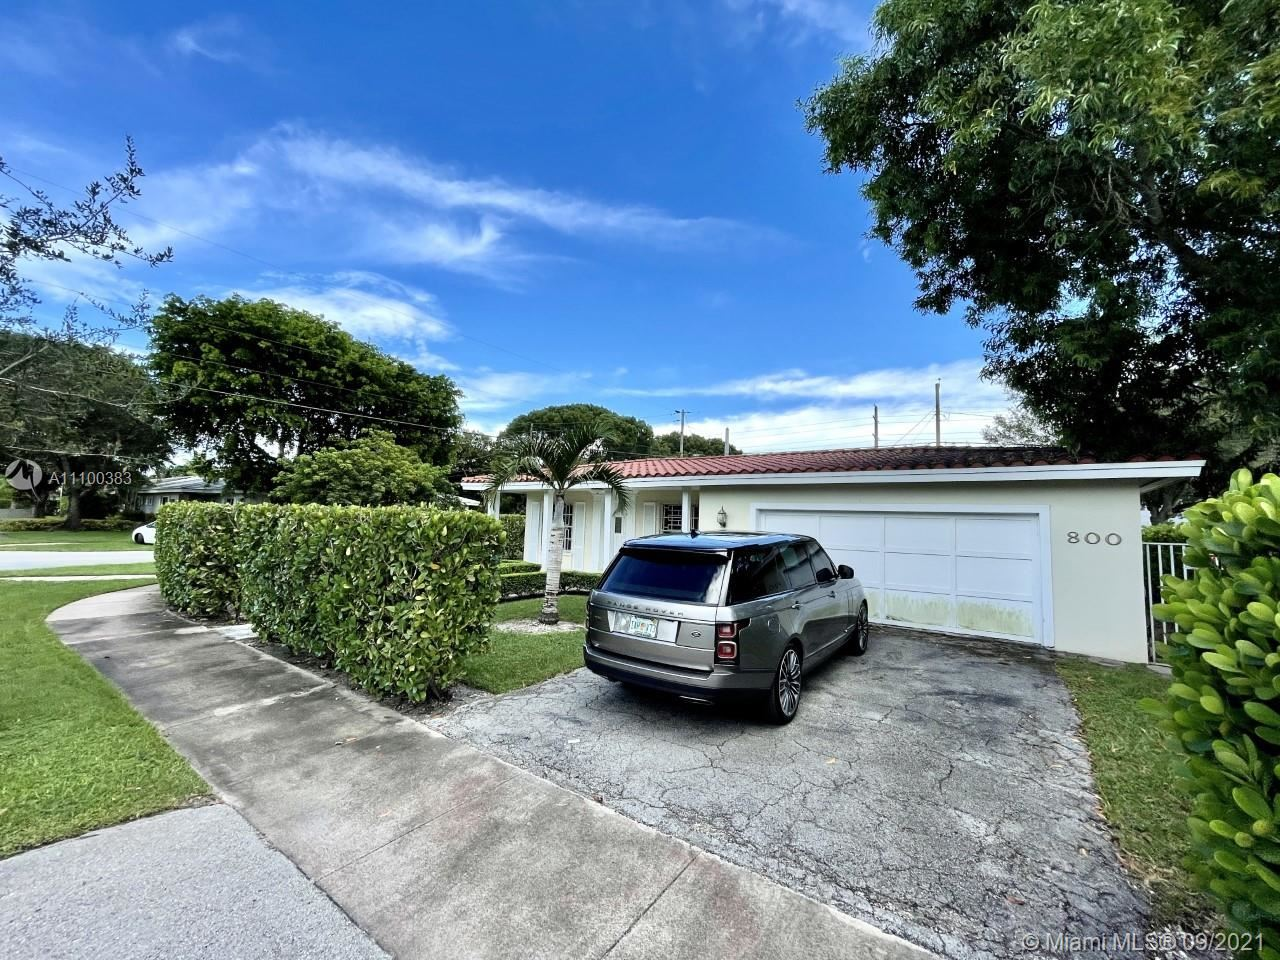 Photo of 800 Benevento Ave, Coral Gables, FL 33146 (MLS # A11100383)